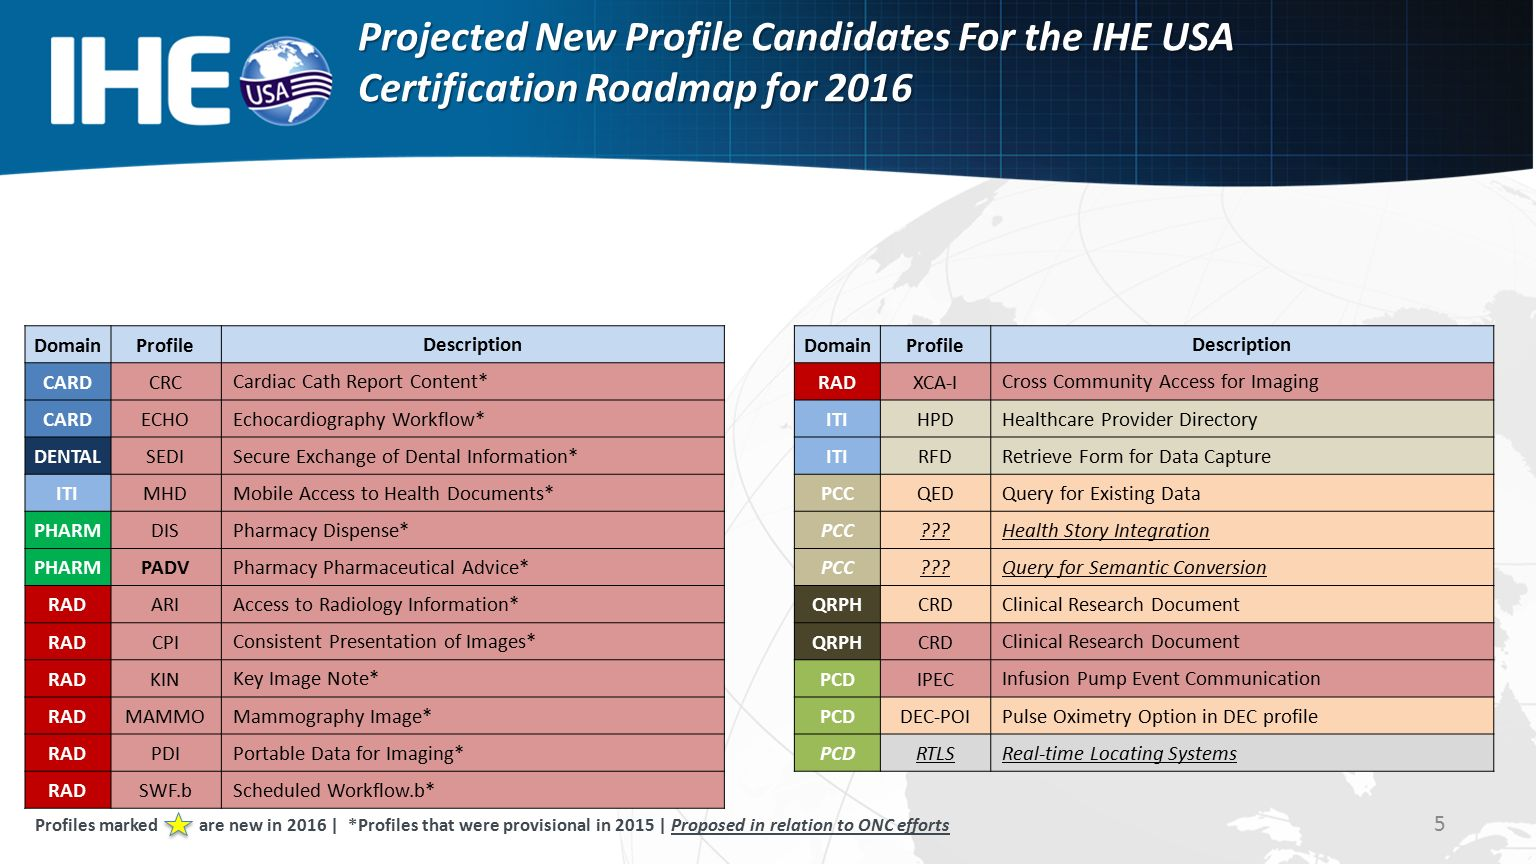 Hie certified overview diagram healtheway iwg and ihe usa projected new profile candidates for the ihe usa certification roadmap for 2016 5 domainprofile description radxca xflitez Gallery